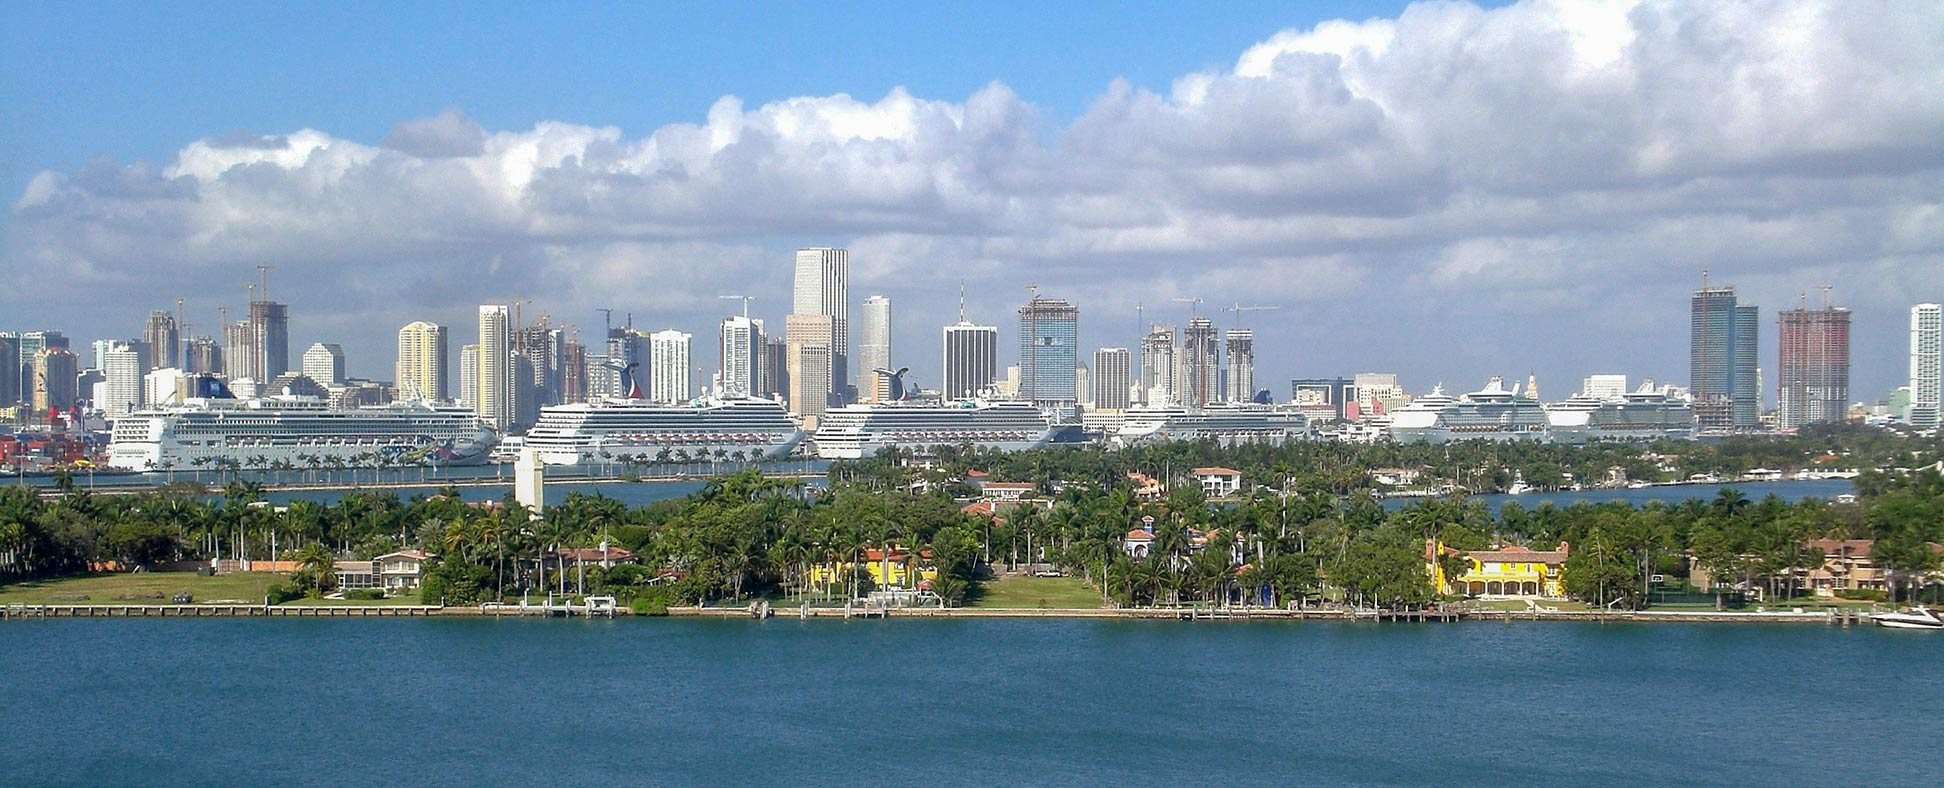 Google Map of Miami, Florida, USA - Nations Online Project